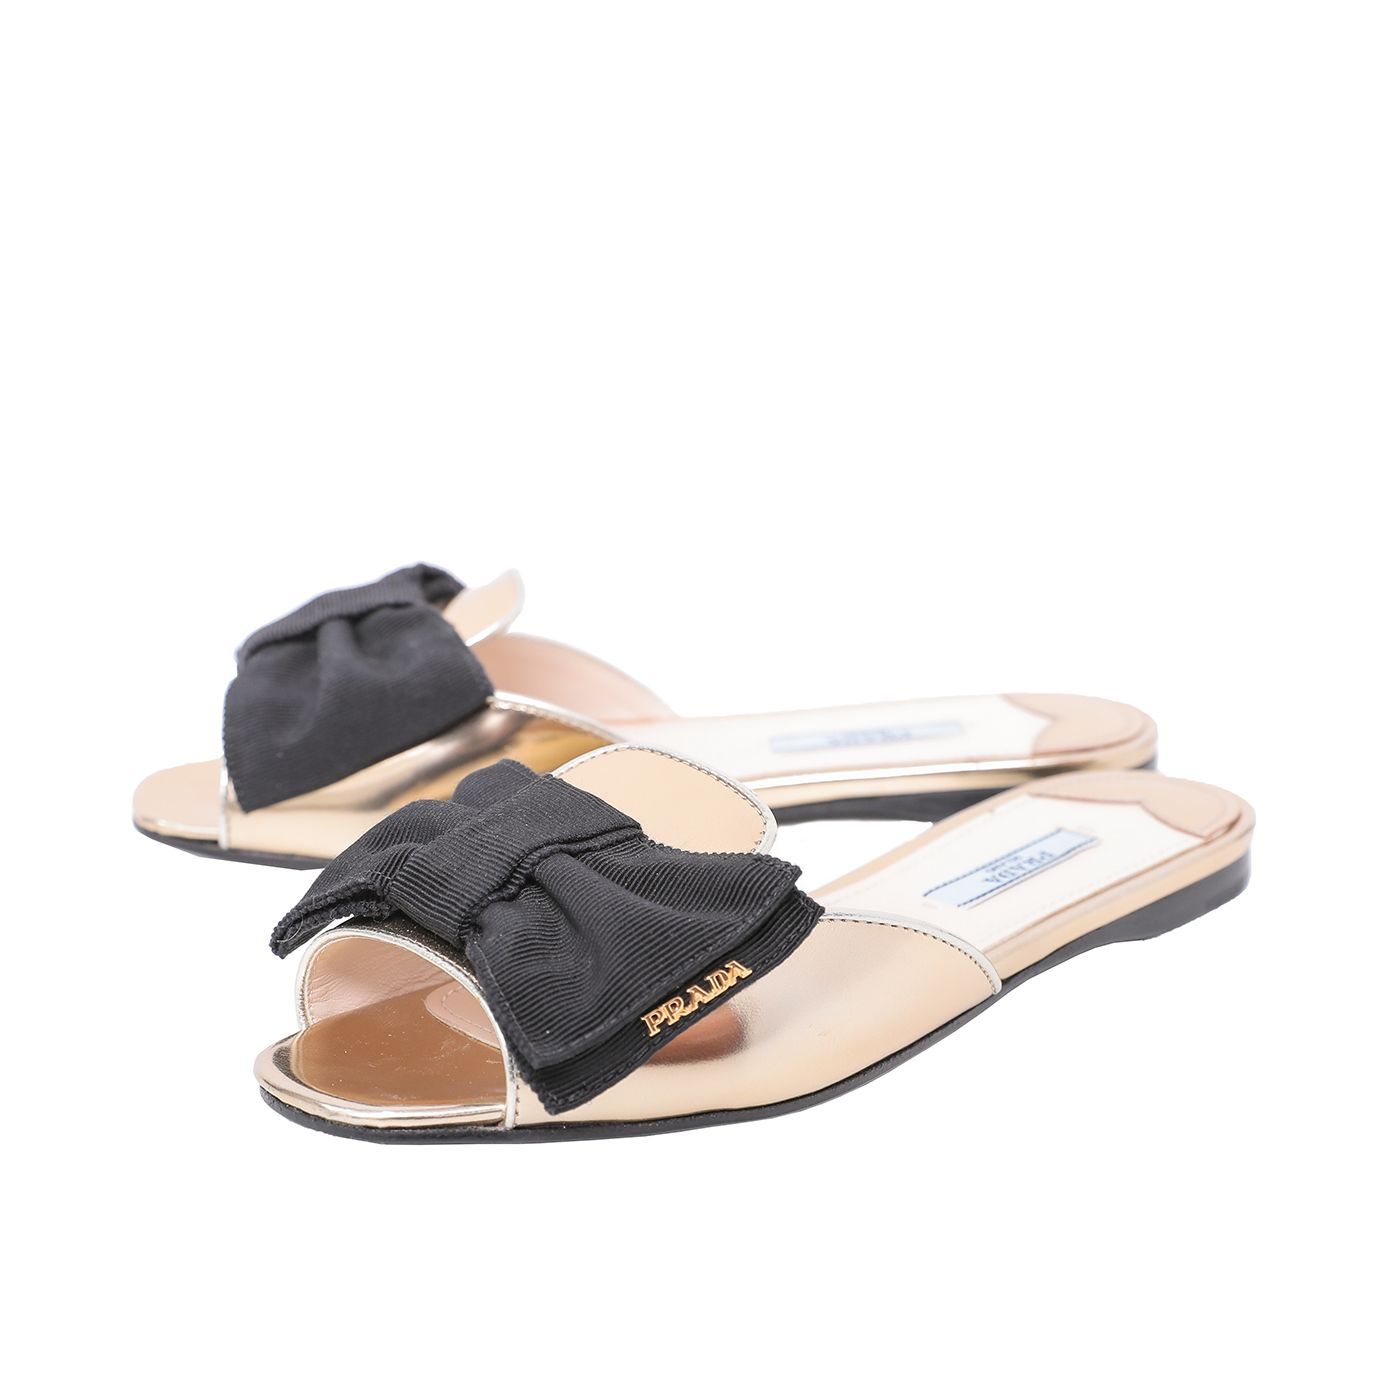 Prada Black Bow Flat Sandals 36.5